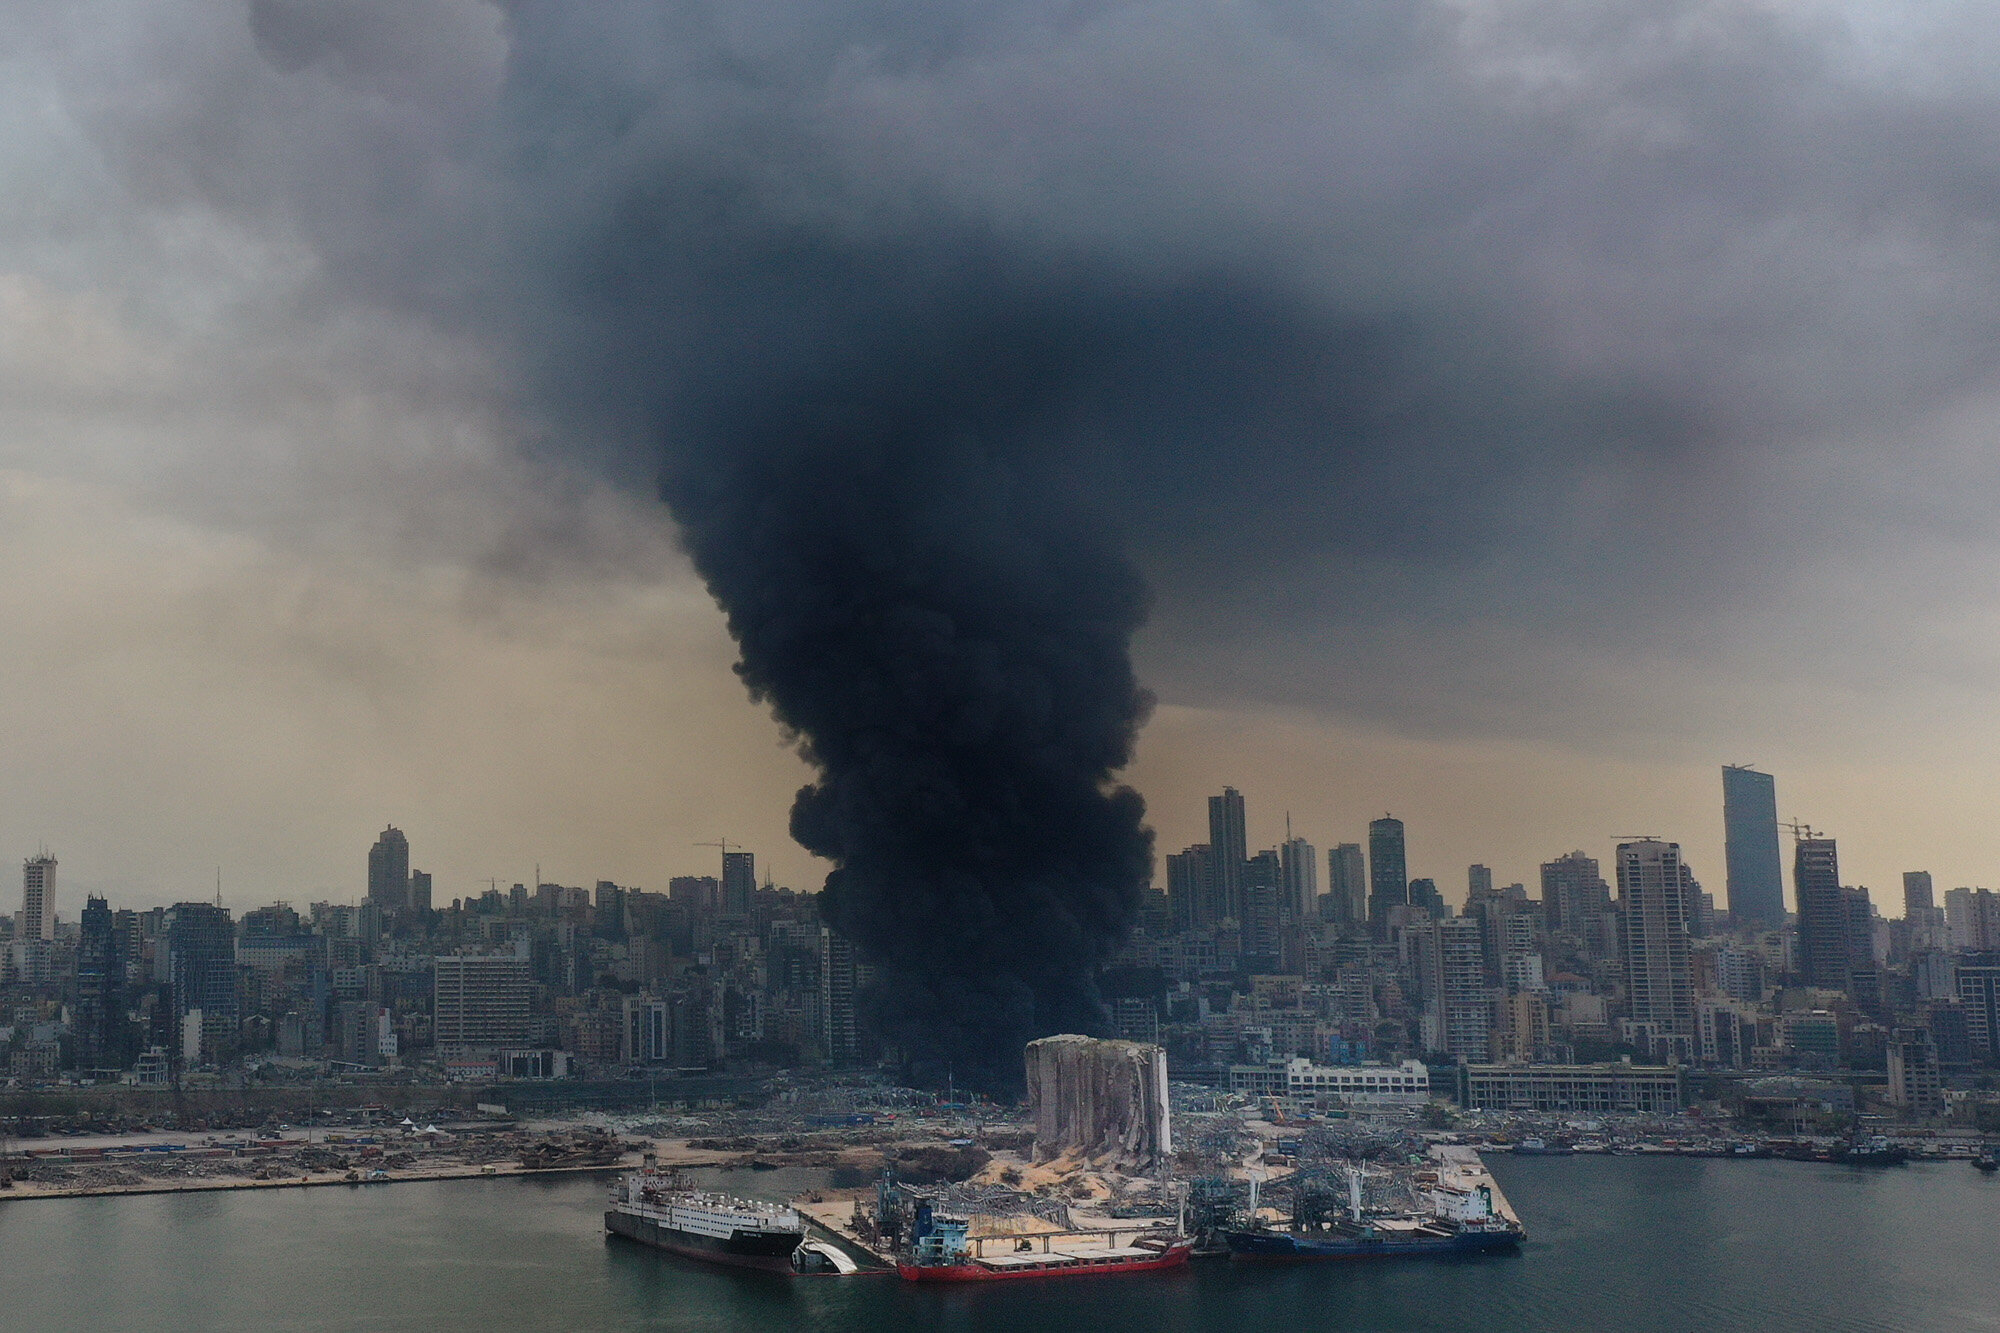 Black smoke rises from a warehouse fire at the Port of Beirut, Lebanon, on Sept. 10. 2020, triggering panic among residents traumatized by the massive explosion that killed and injured thousands of people the month before. (AP Photo/Hussein Malla)